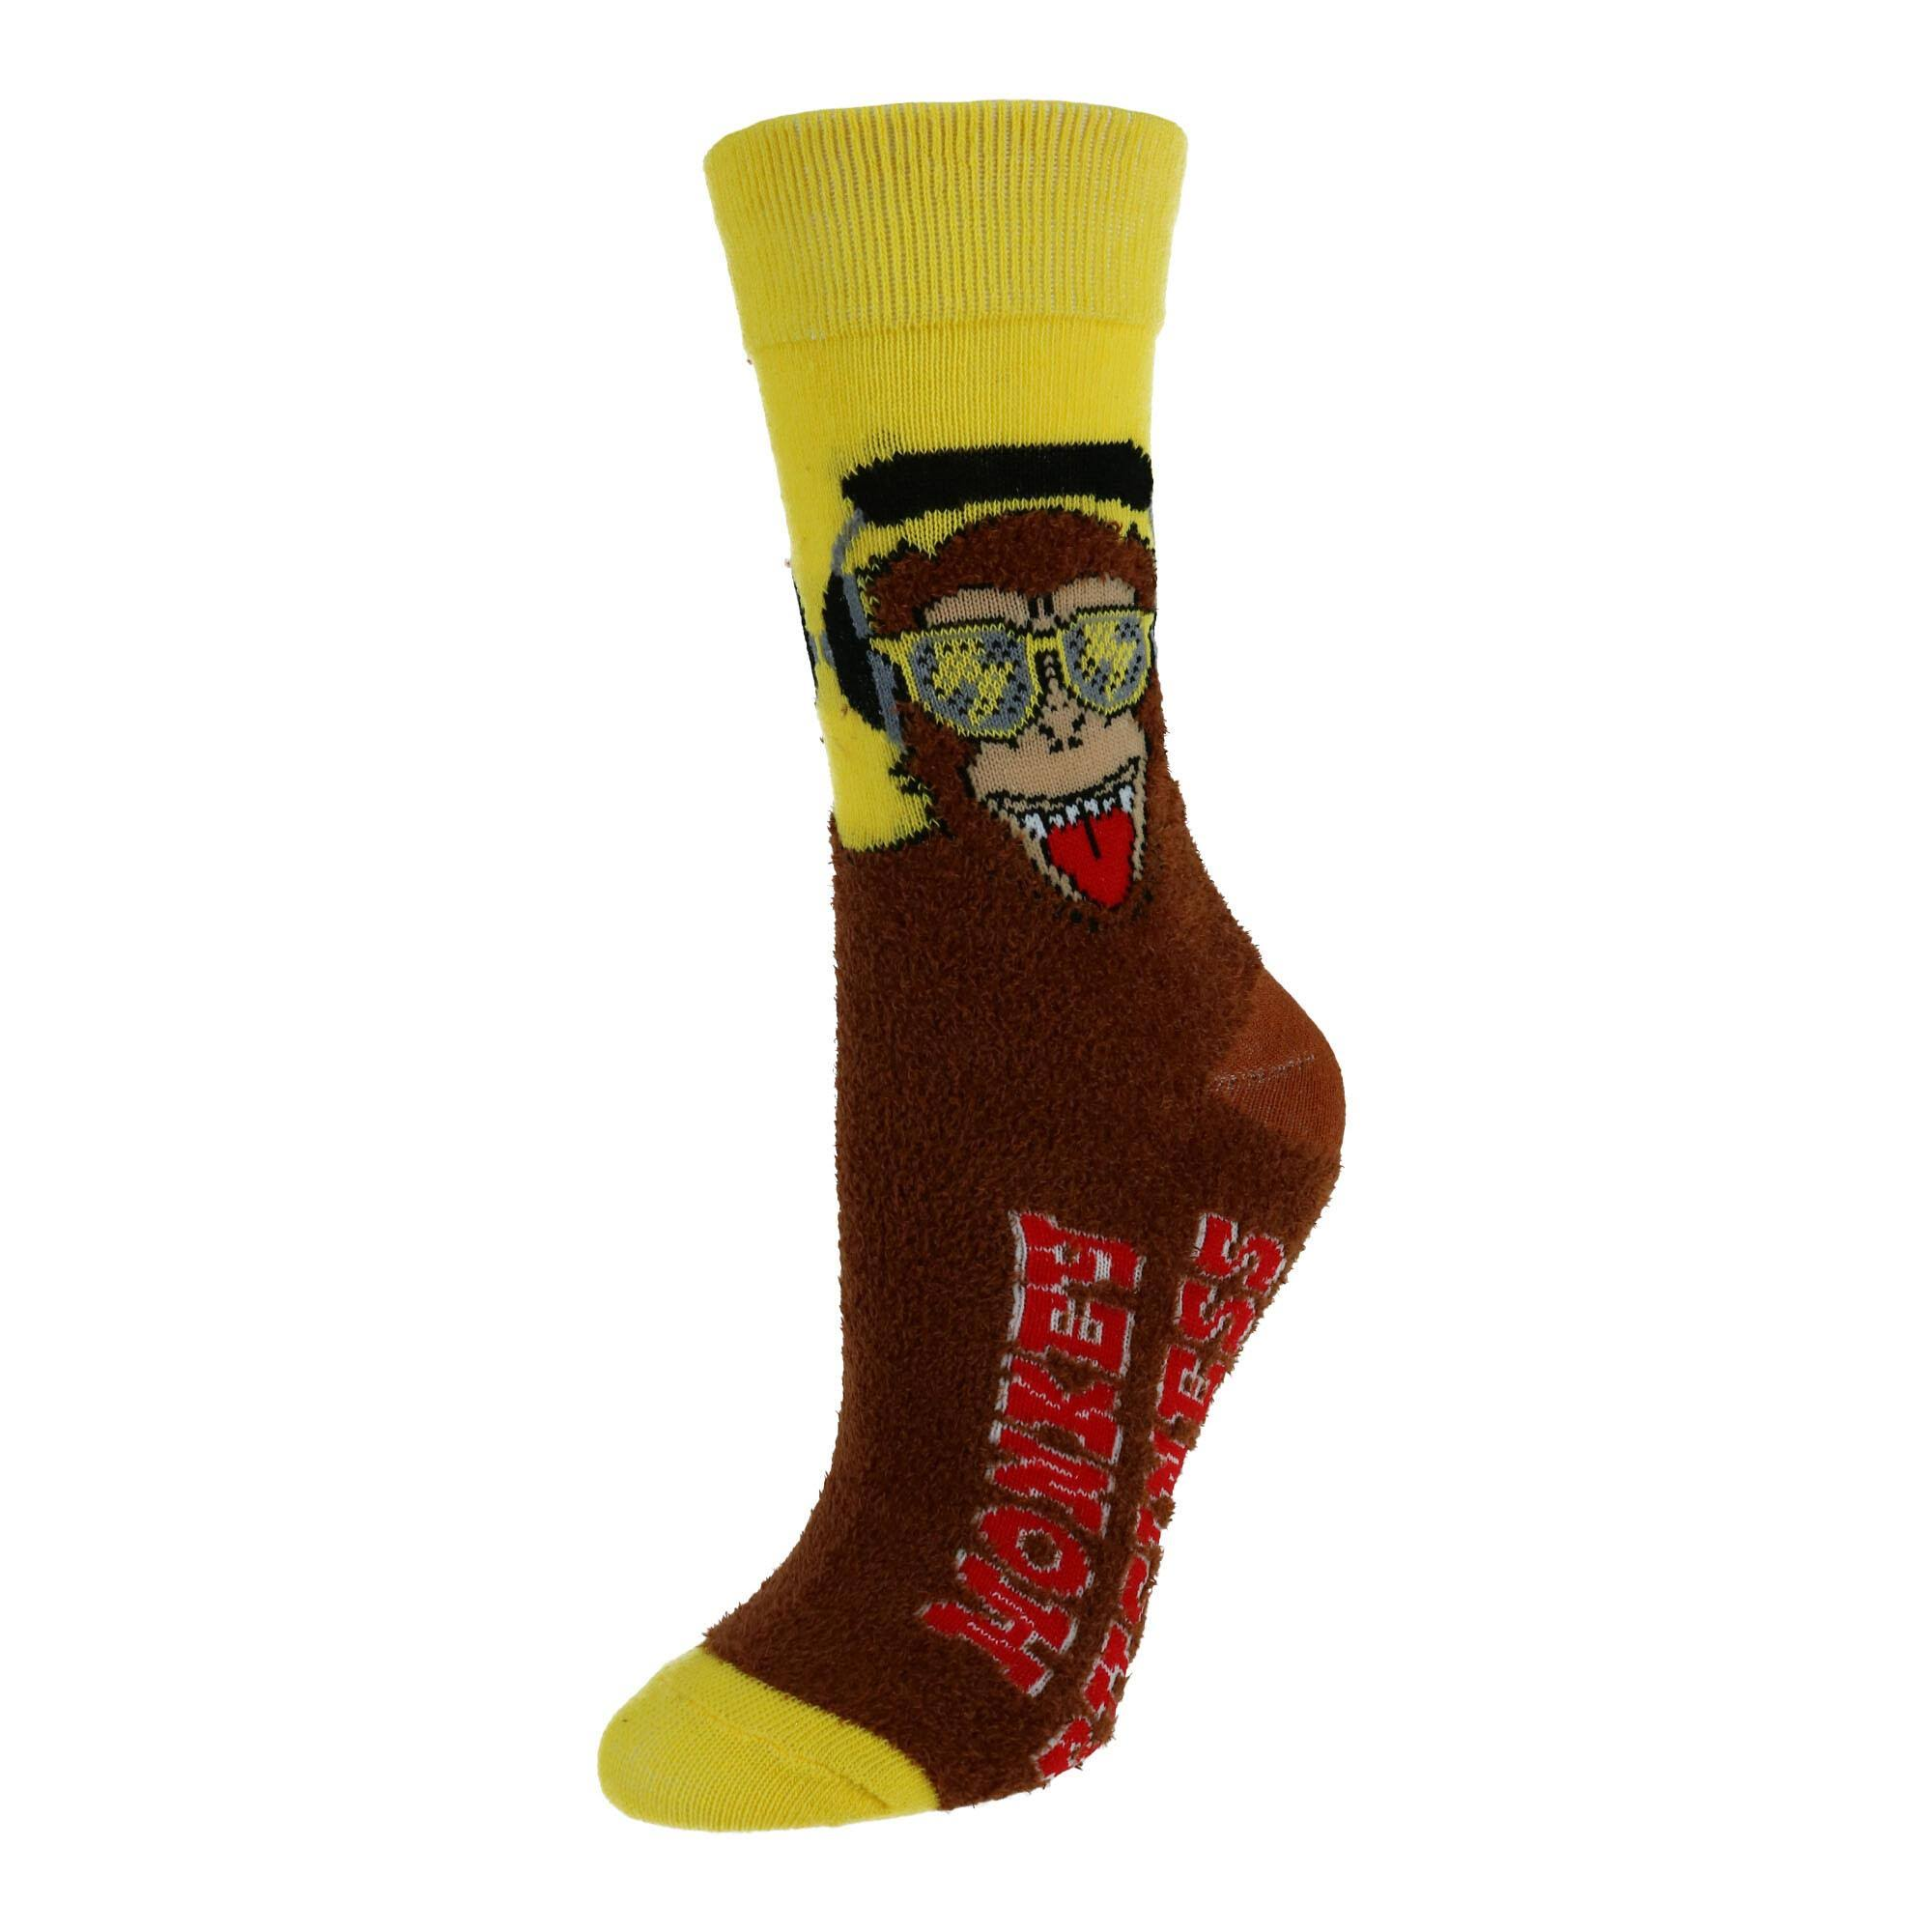 Two Left Feet Women's Super Soft Fuzzy Crew Socks - Yellow Small